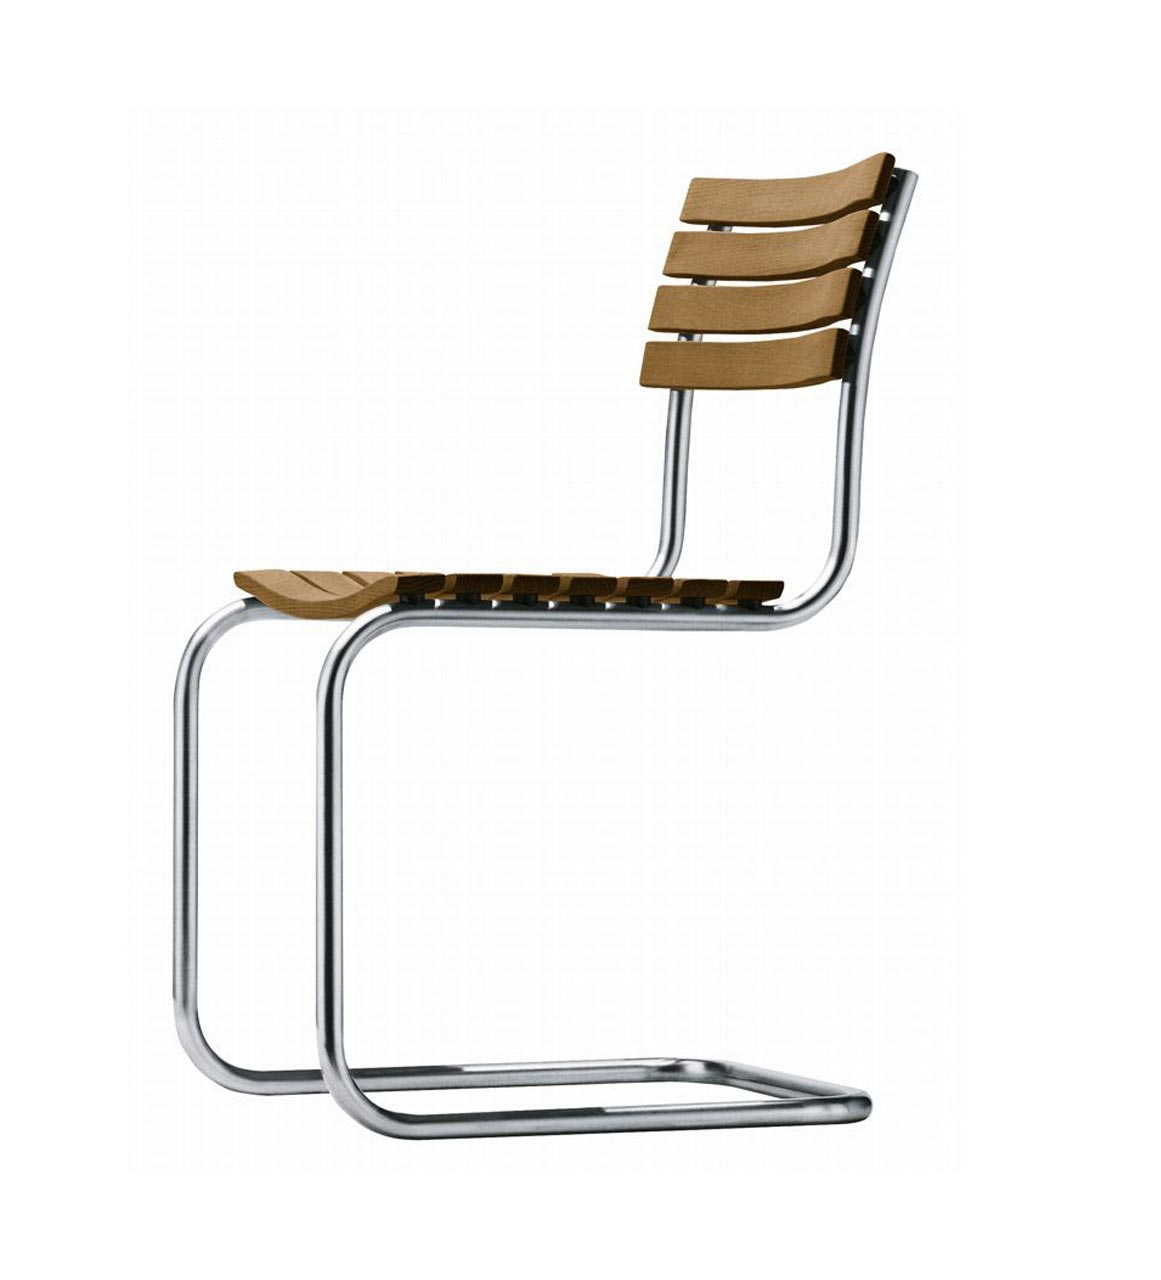 S40 by Thonet